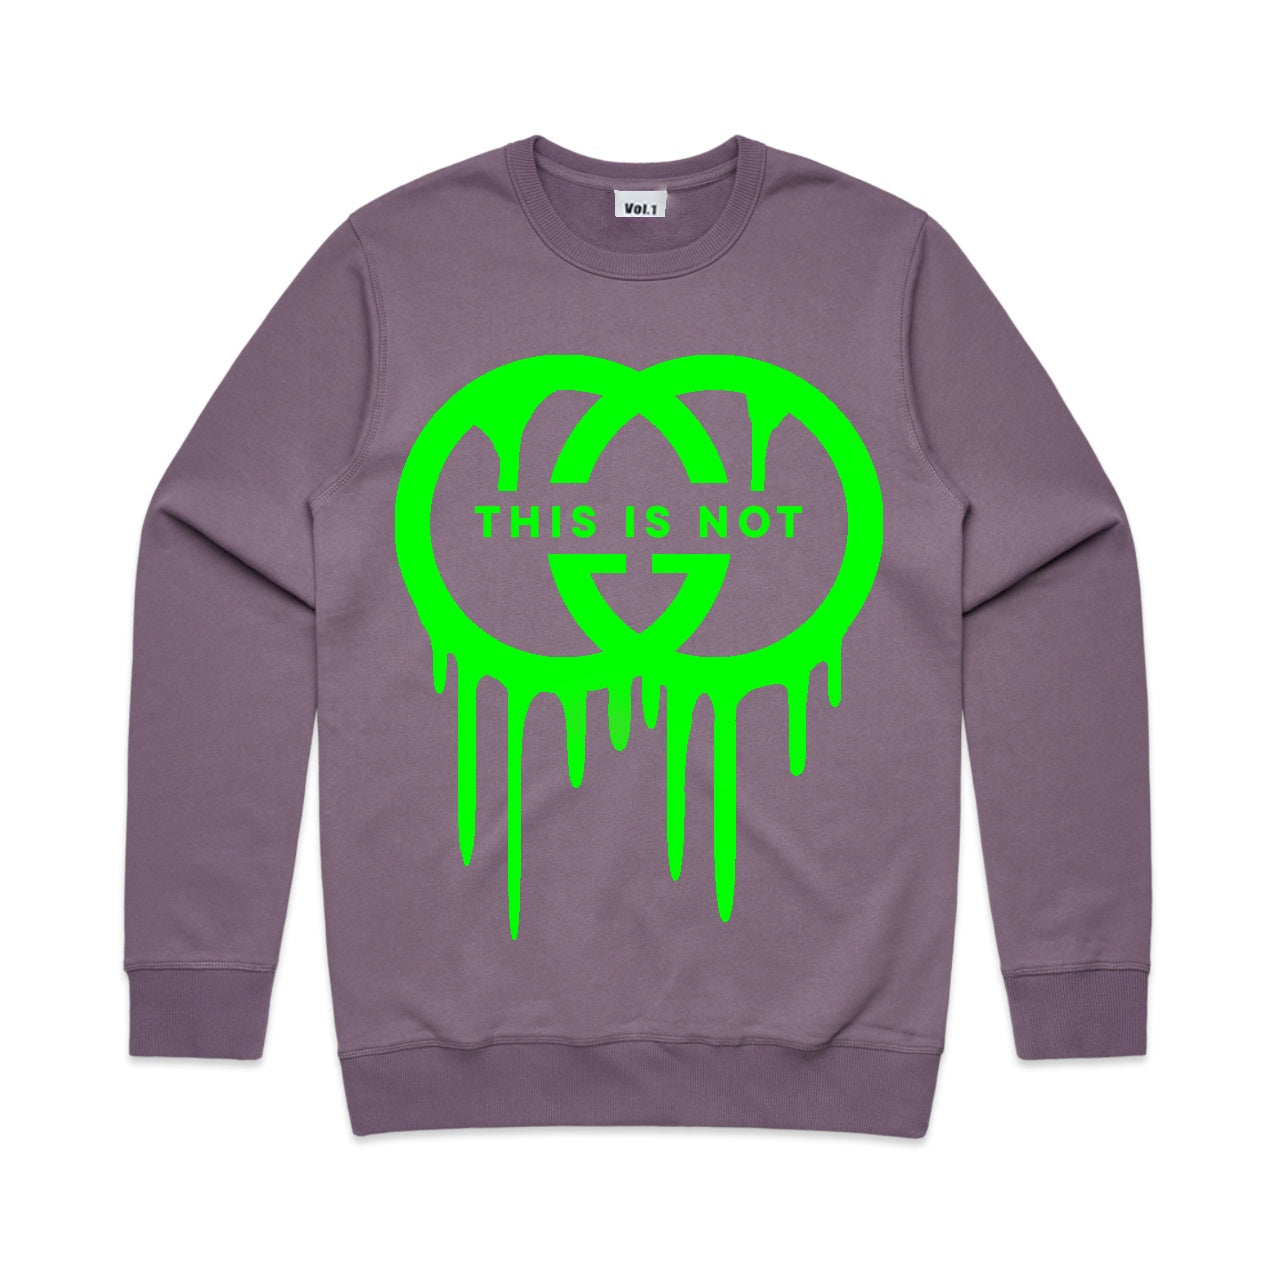 Vol.1 This Is Not GG Crew Neck Jumper Mauveish - Unisex